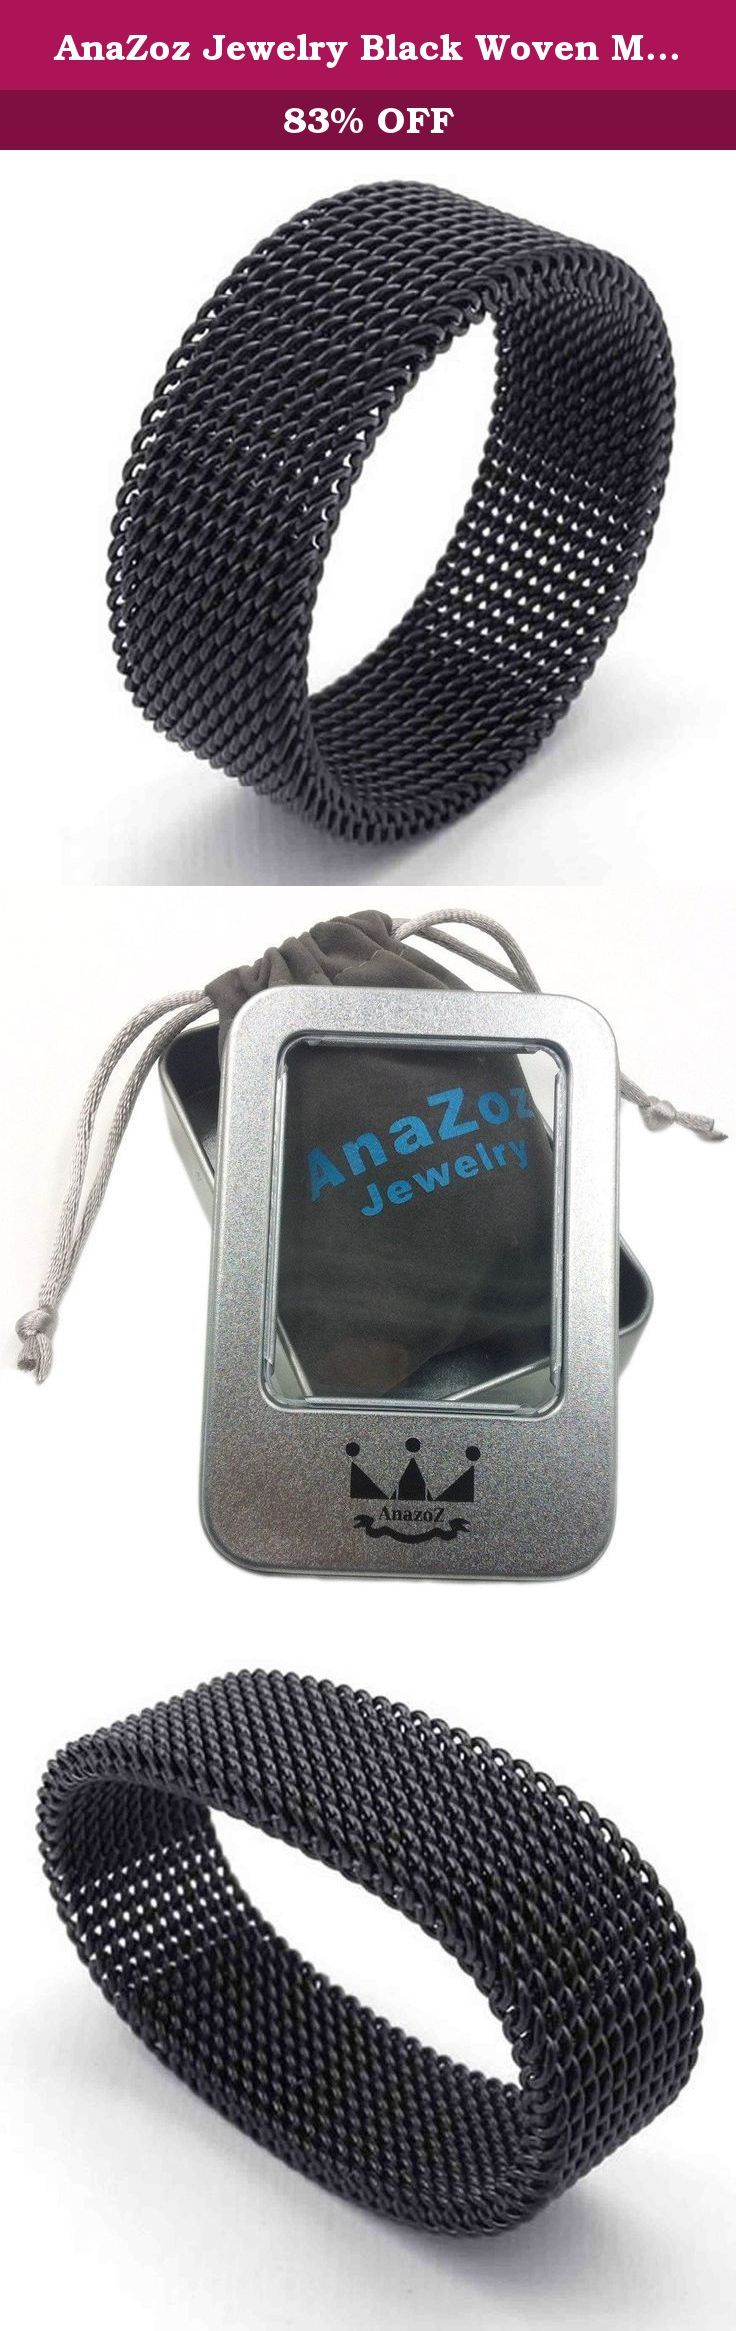 AnaZoz Jewelry Black Woven Mesh Band 8MM Stainless Steel Screen Mens Womens Ring Size 11. Why Choose Stainless steel Material? Stainless steel is best known as the material used to make surgical instruments, building and bridge supports, hot water heaters, microwave oven liners and other objects where strength and safety.